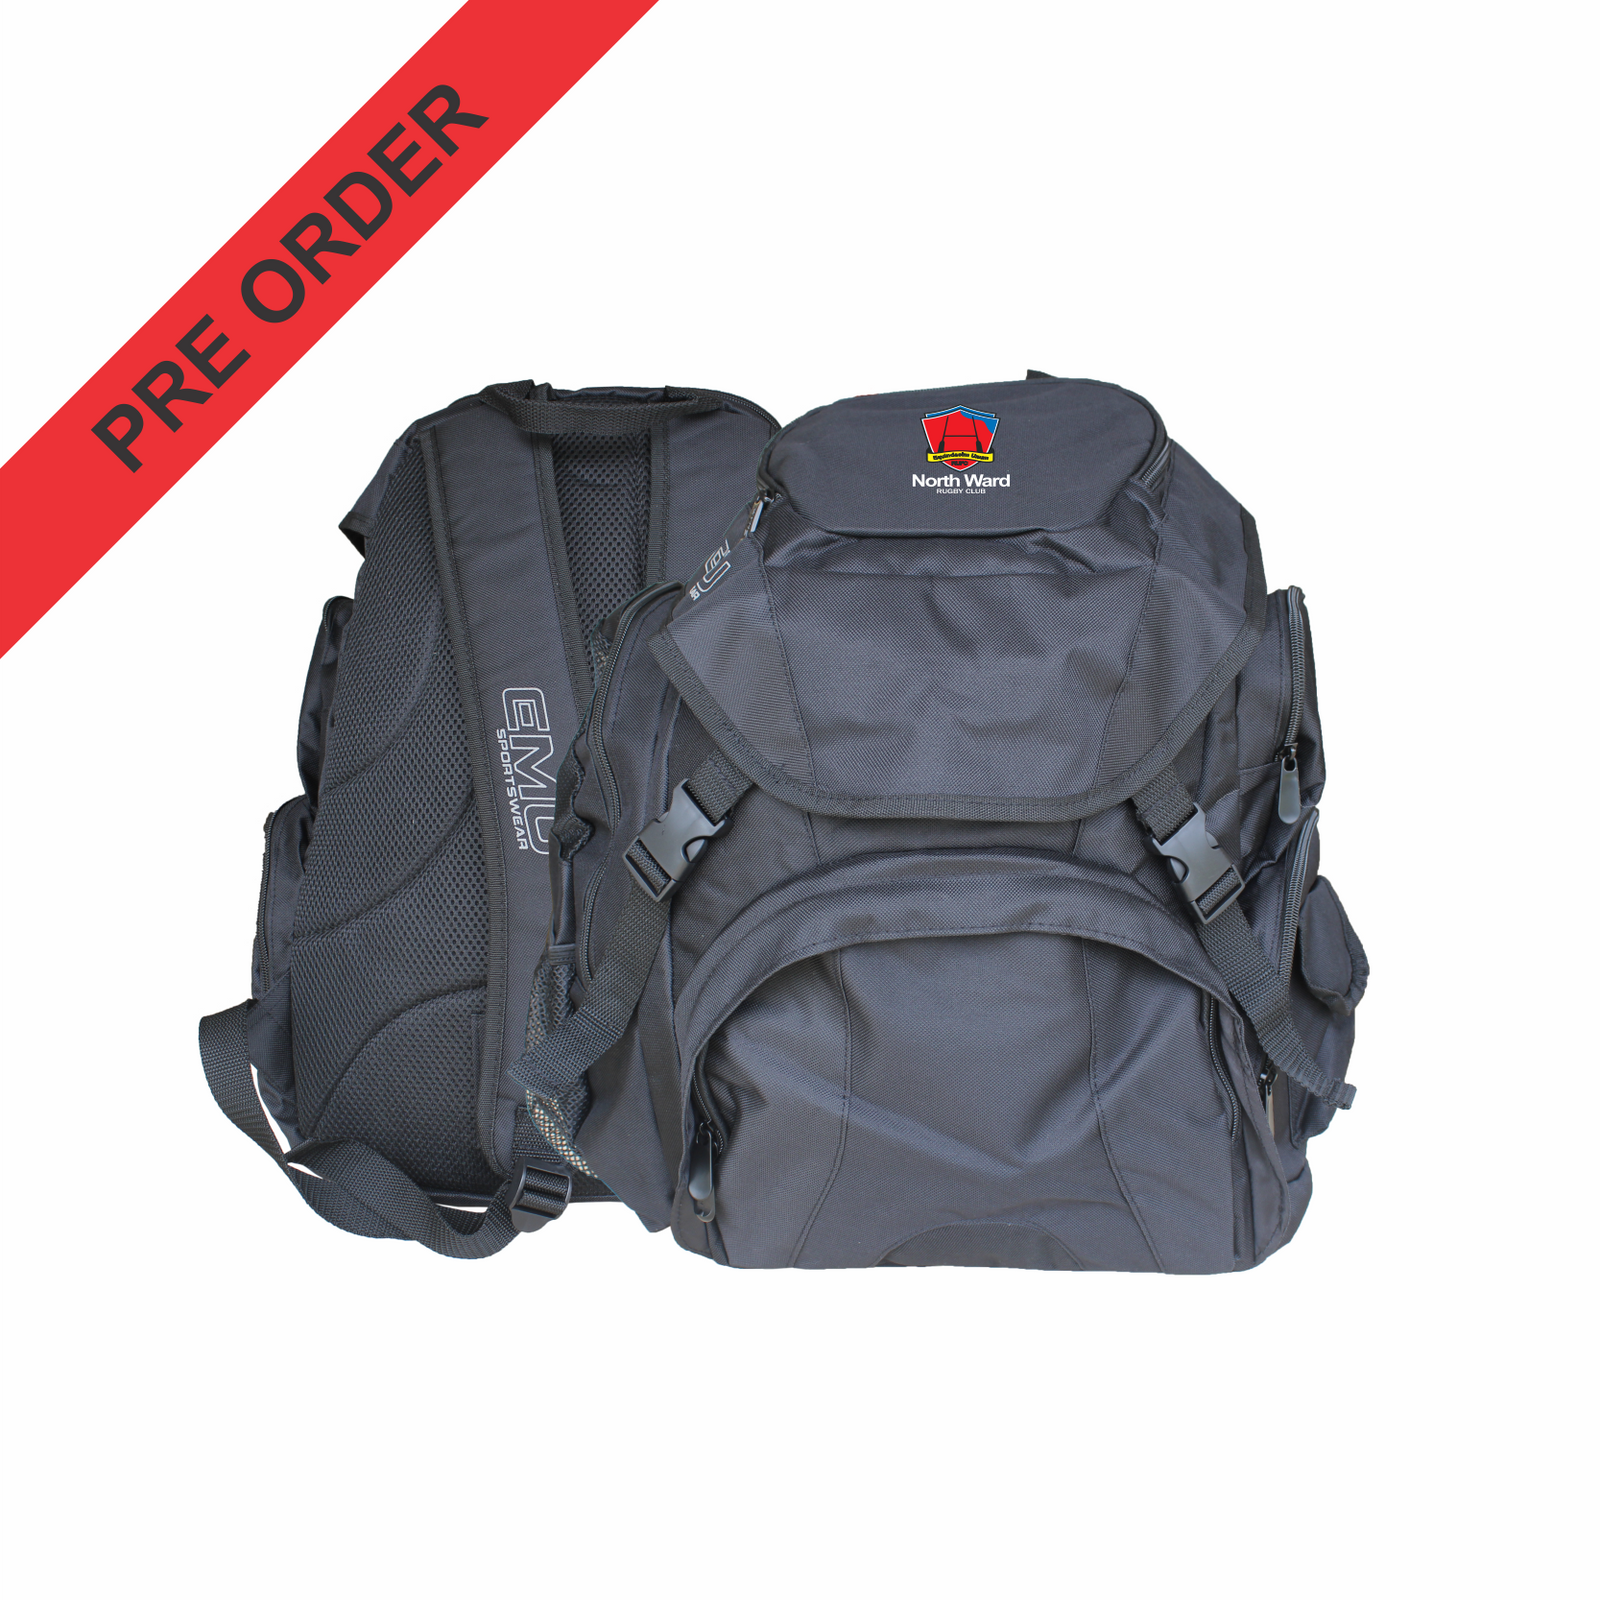 North Ward Rugby Club - Large Elite Backpack